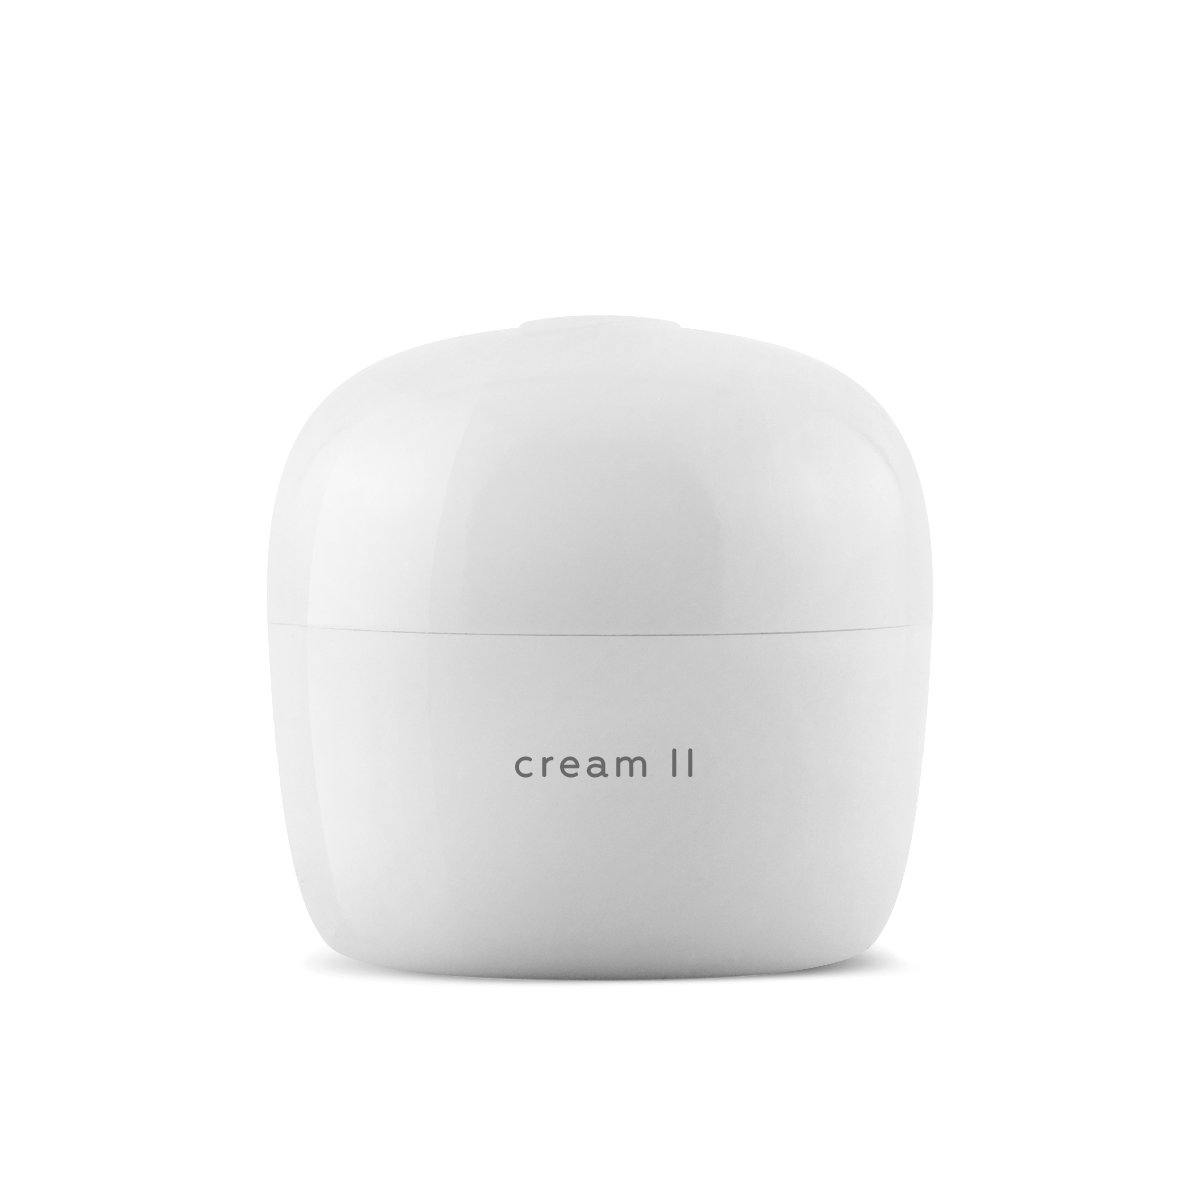 Cream II - Lulette Clean Beauty